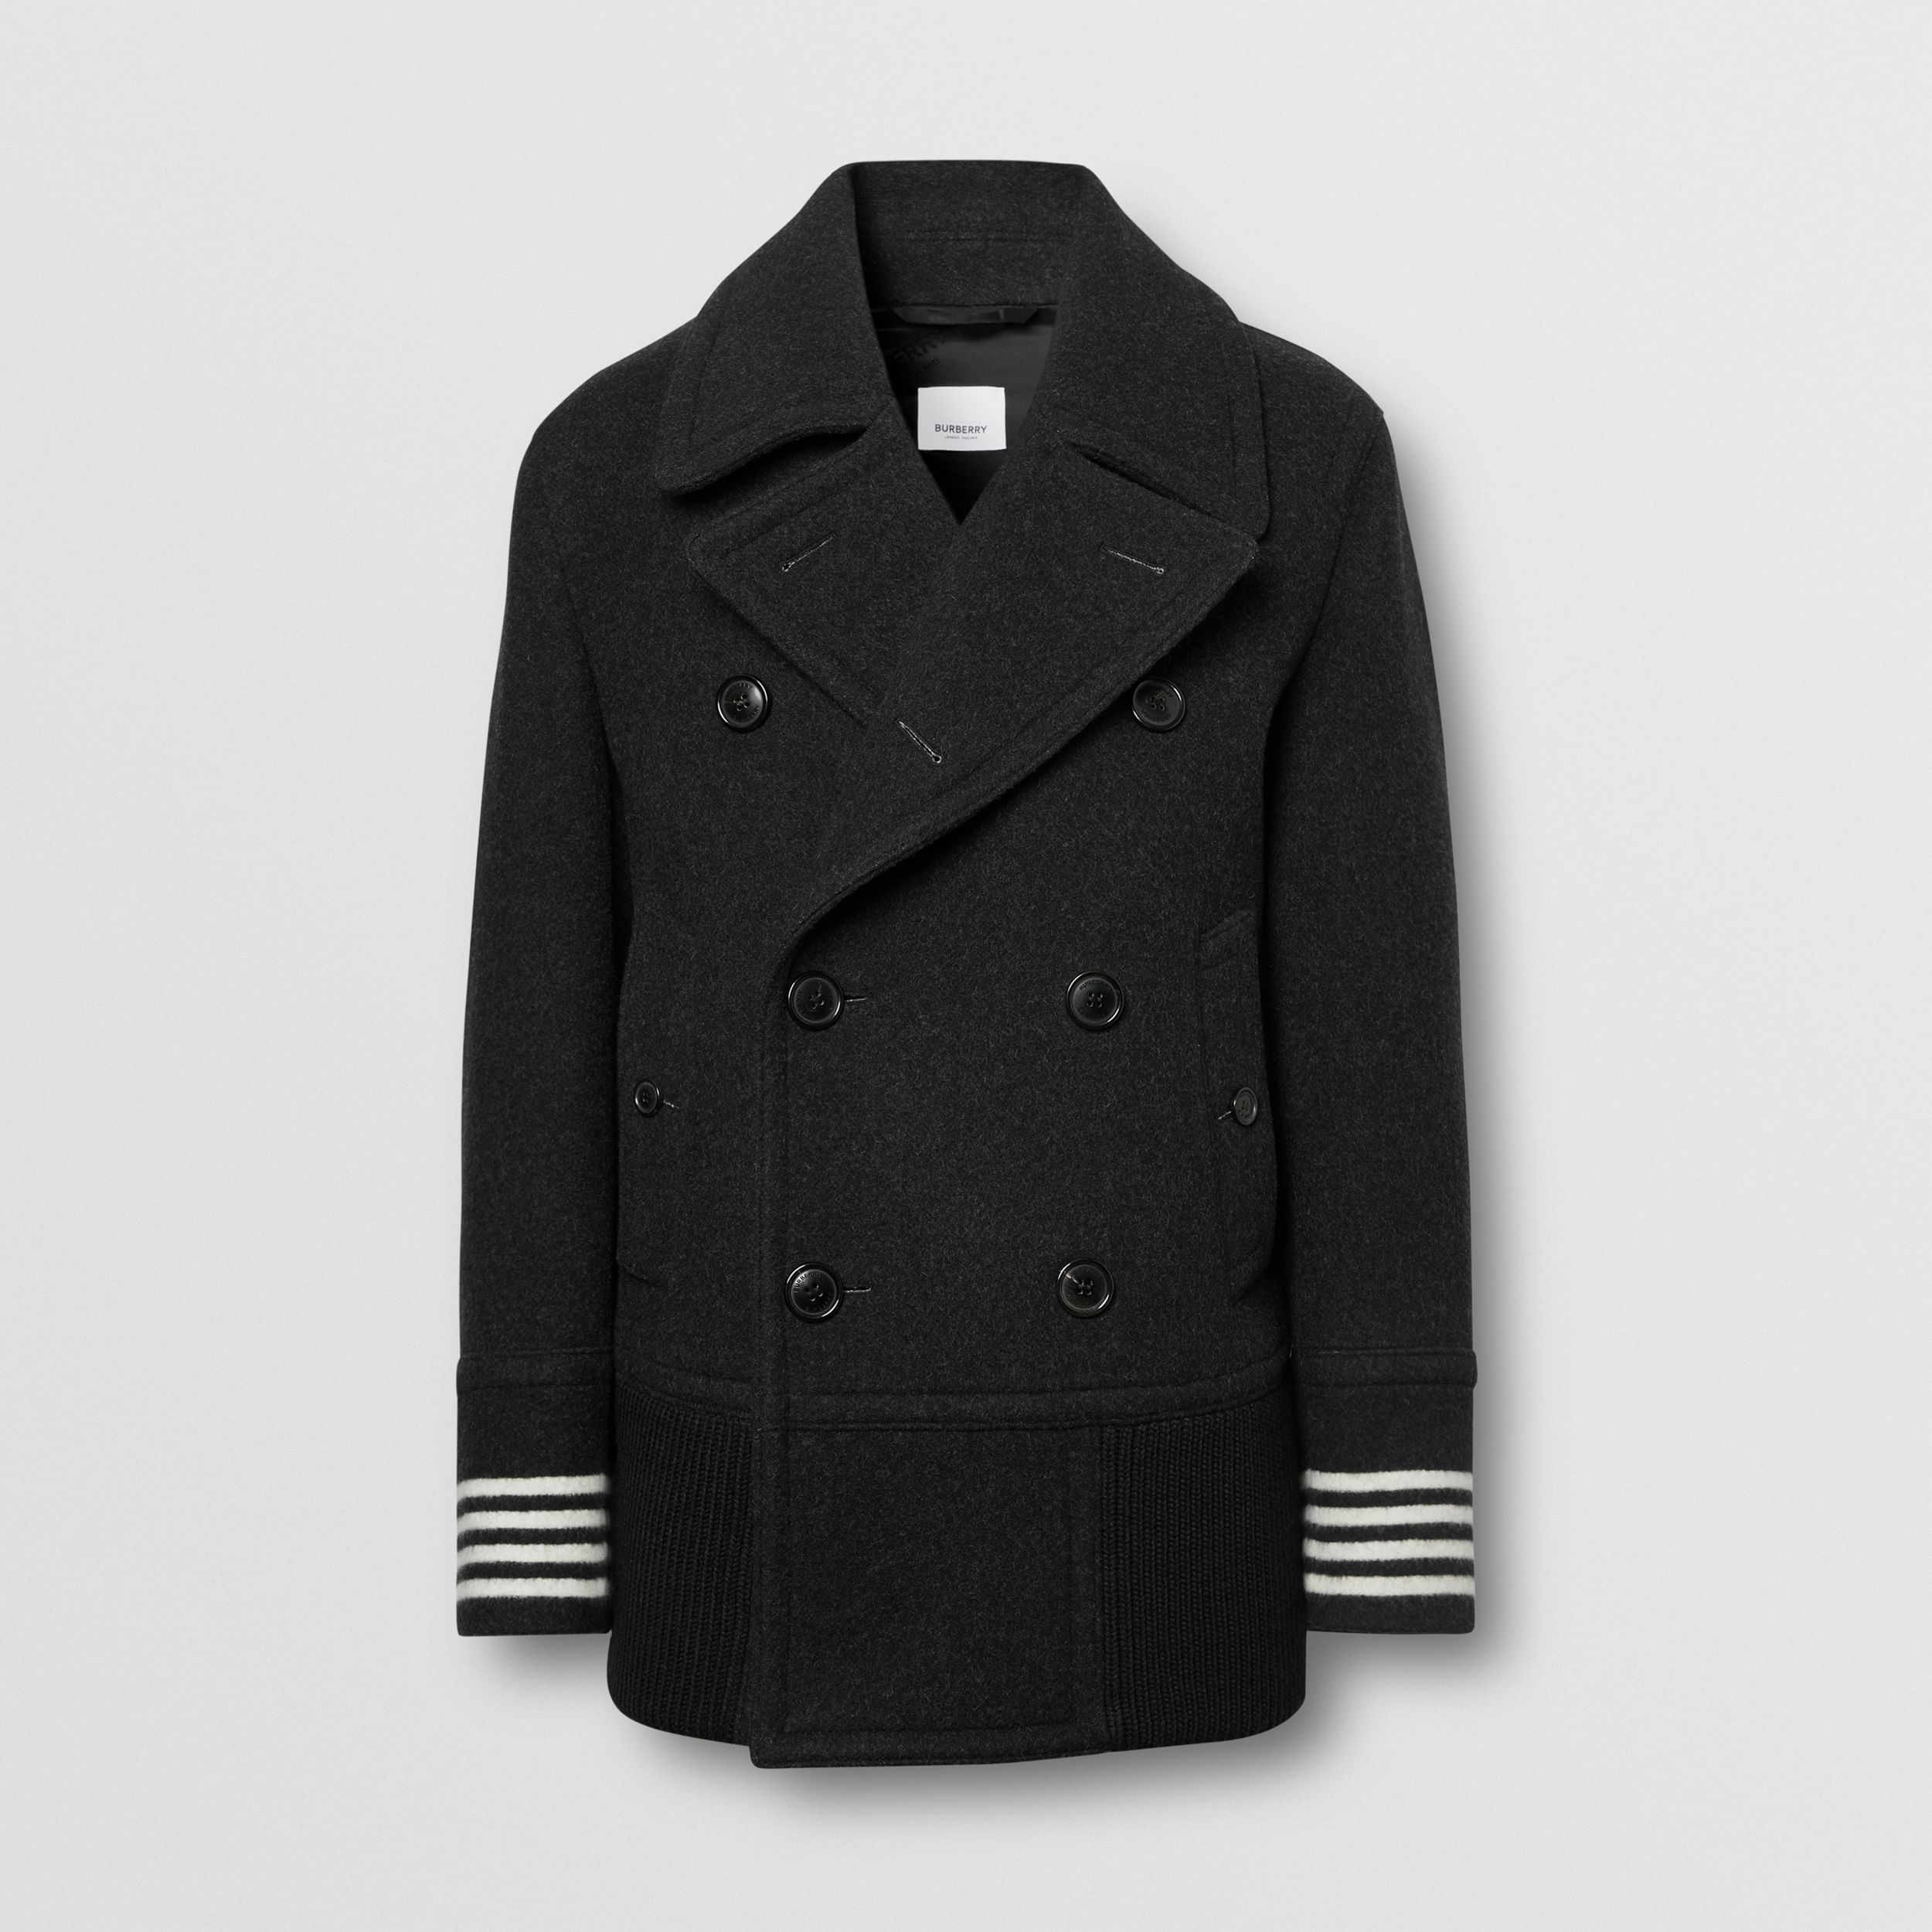 Striped Cuff Wool Pea Coat in Black - Men | Burberry - 4